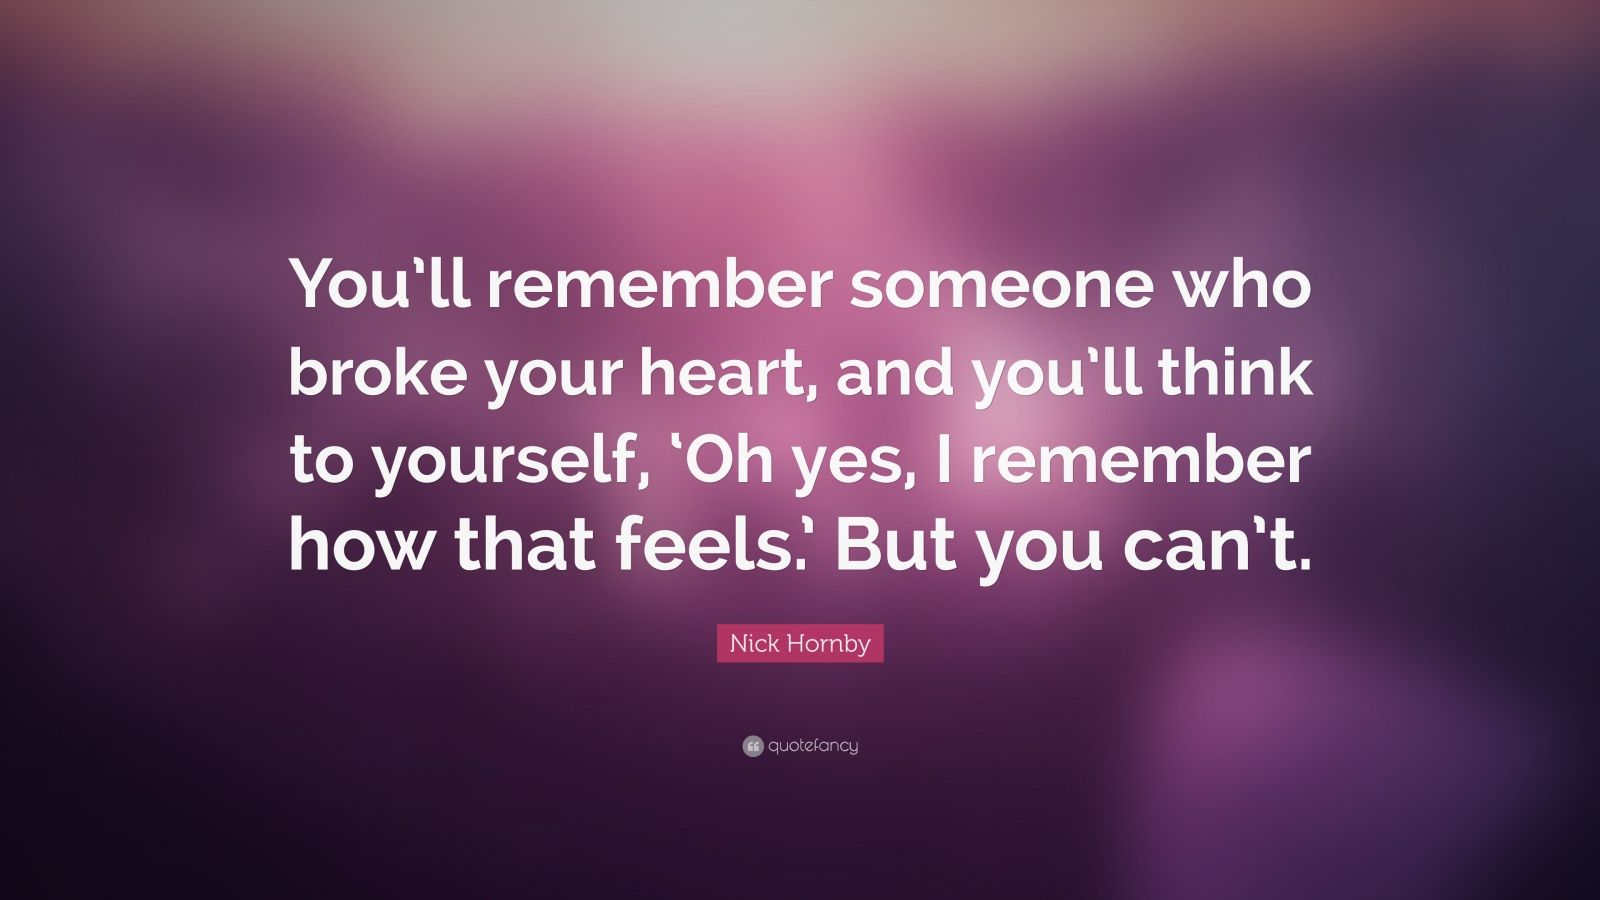 """Nick Hornby Quote: """"You'll remember someone who broke your heart, and you'll think to yourself, 'Oh yes, I remember how that feels.' But you can't."""""""